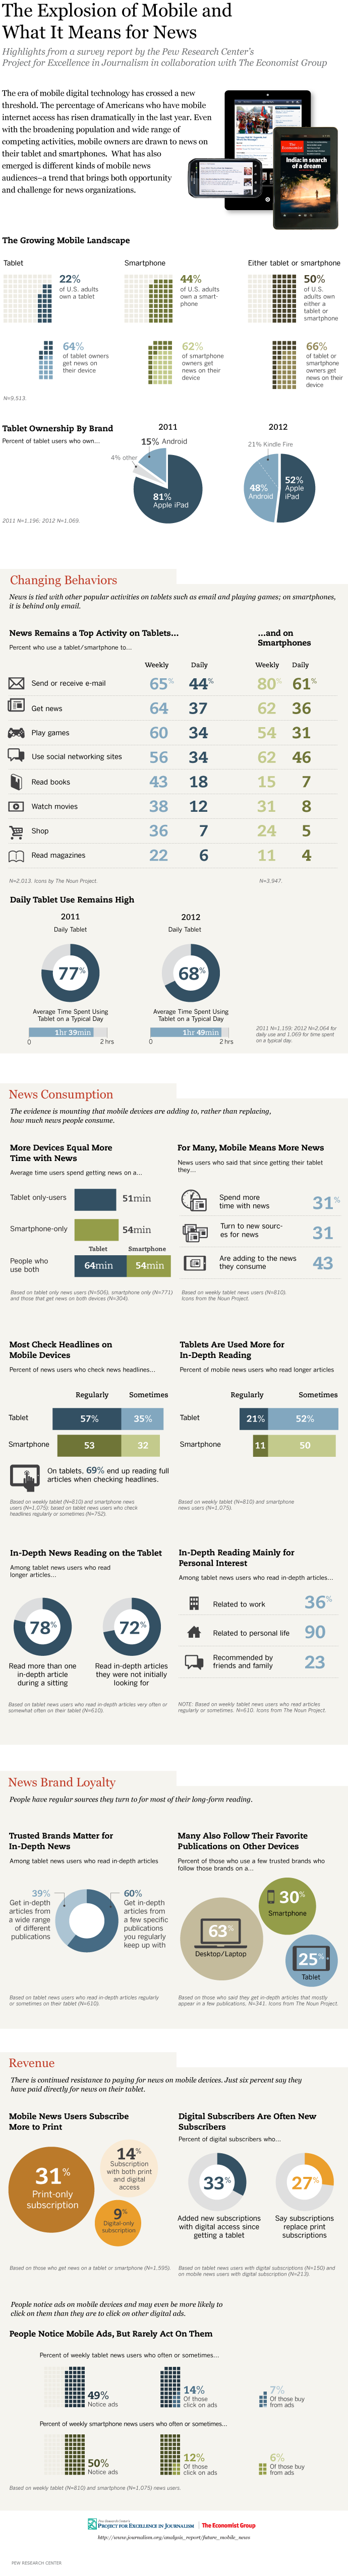 News Consumption Mobile-Infographic